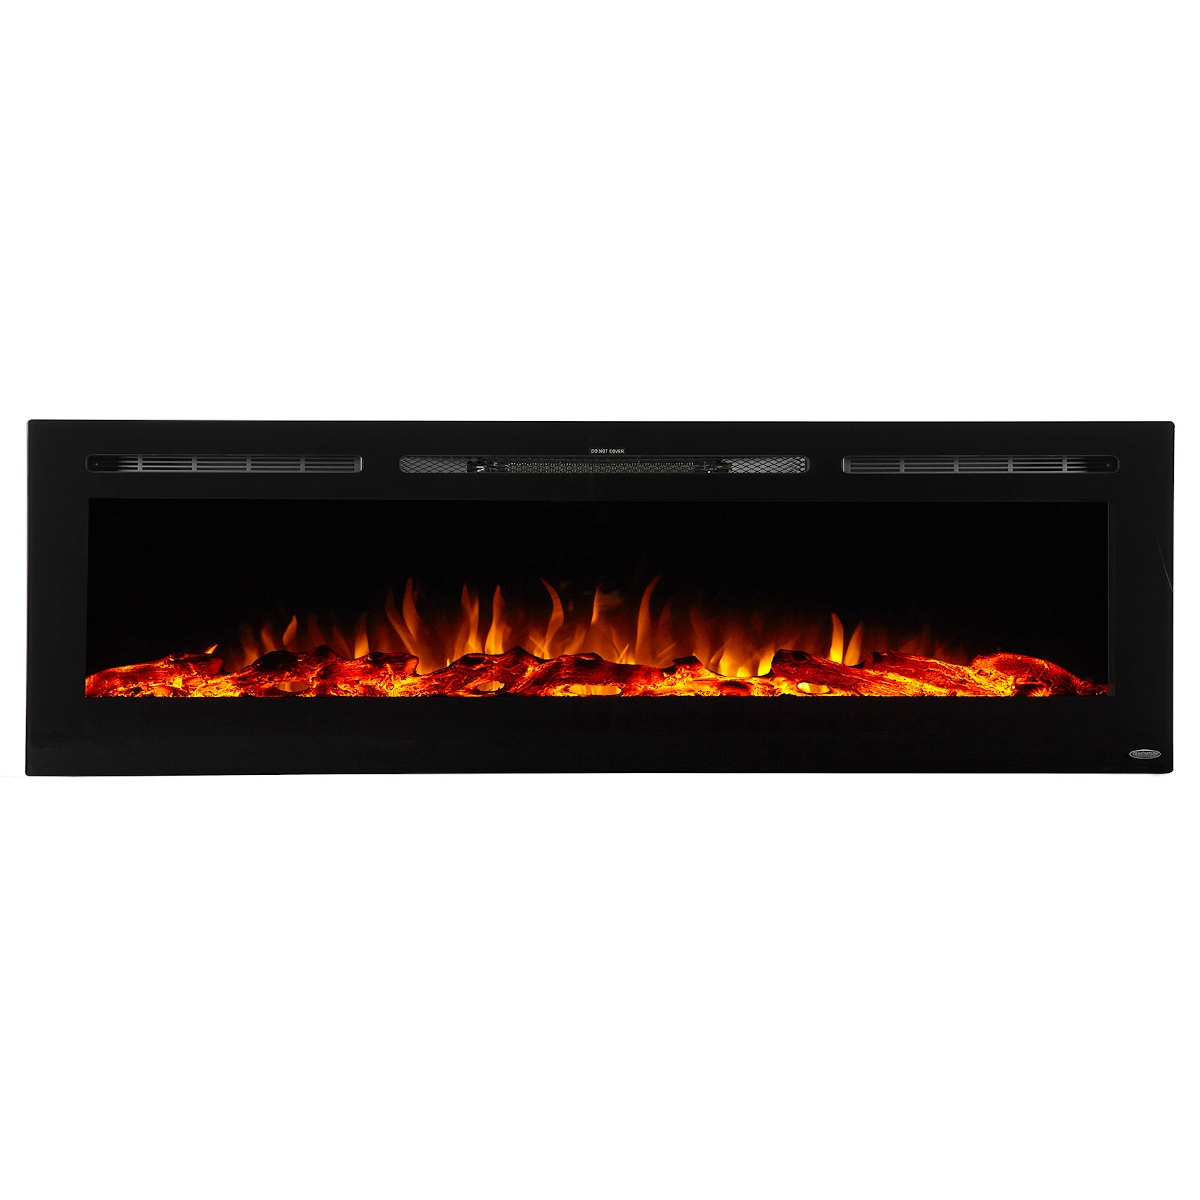 72 inch linear electric fireplace 80015 by touchstone